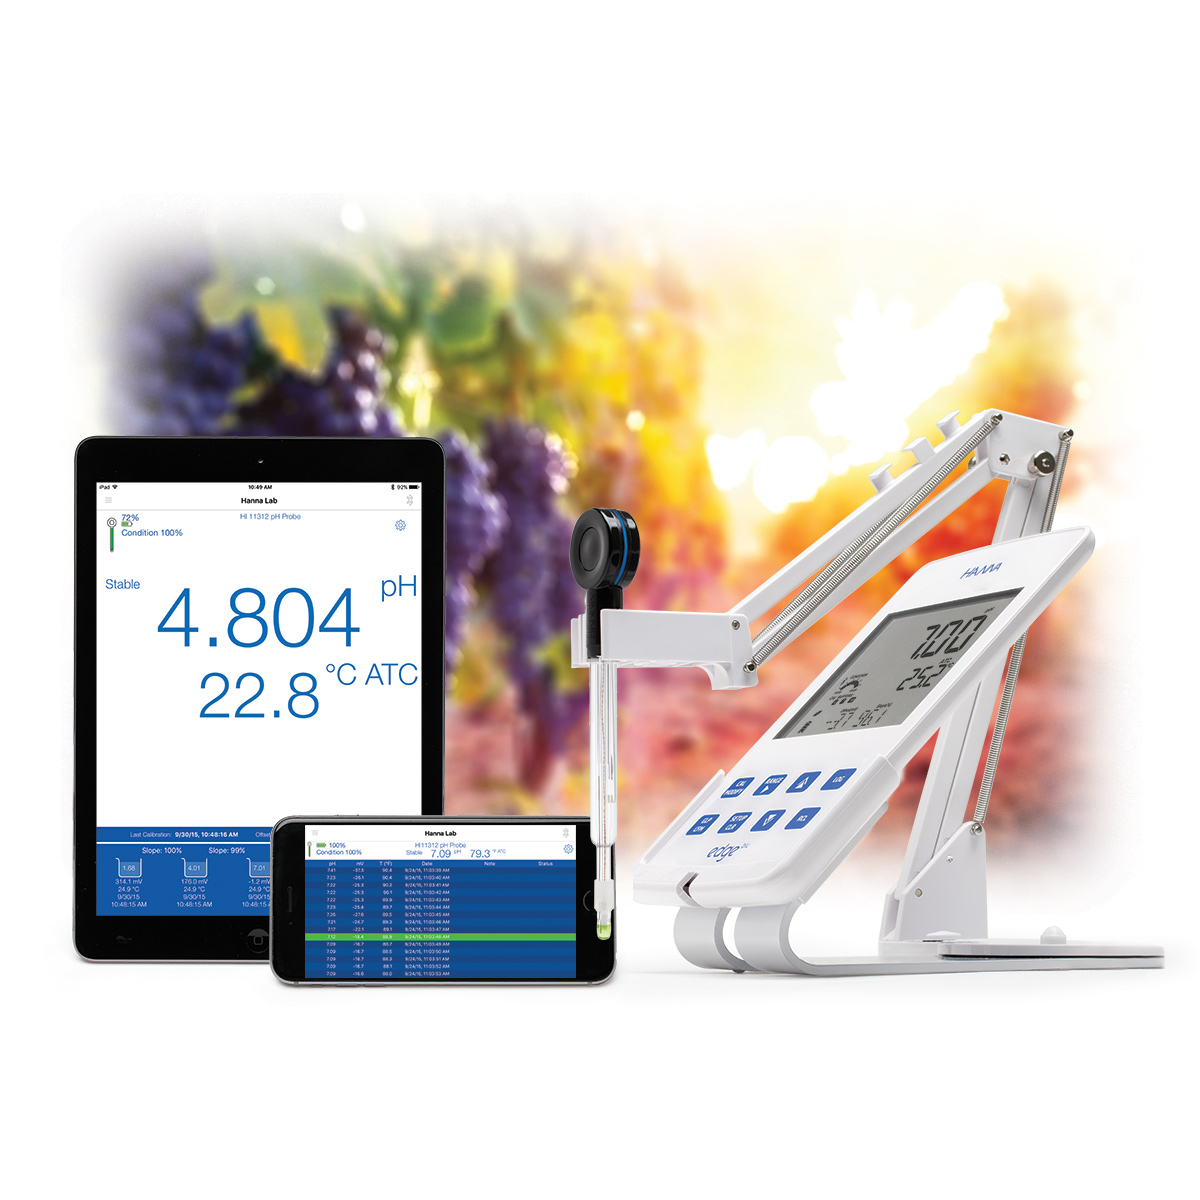 HALOTM - pH Probe with Bluetooth® Smart Technology